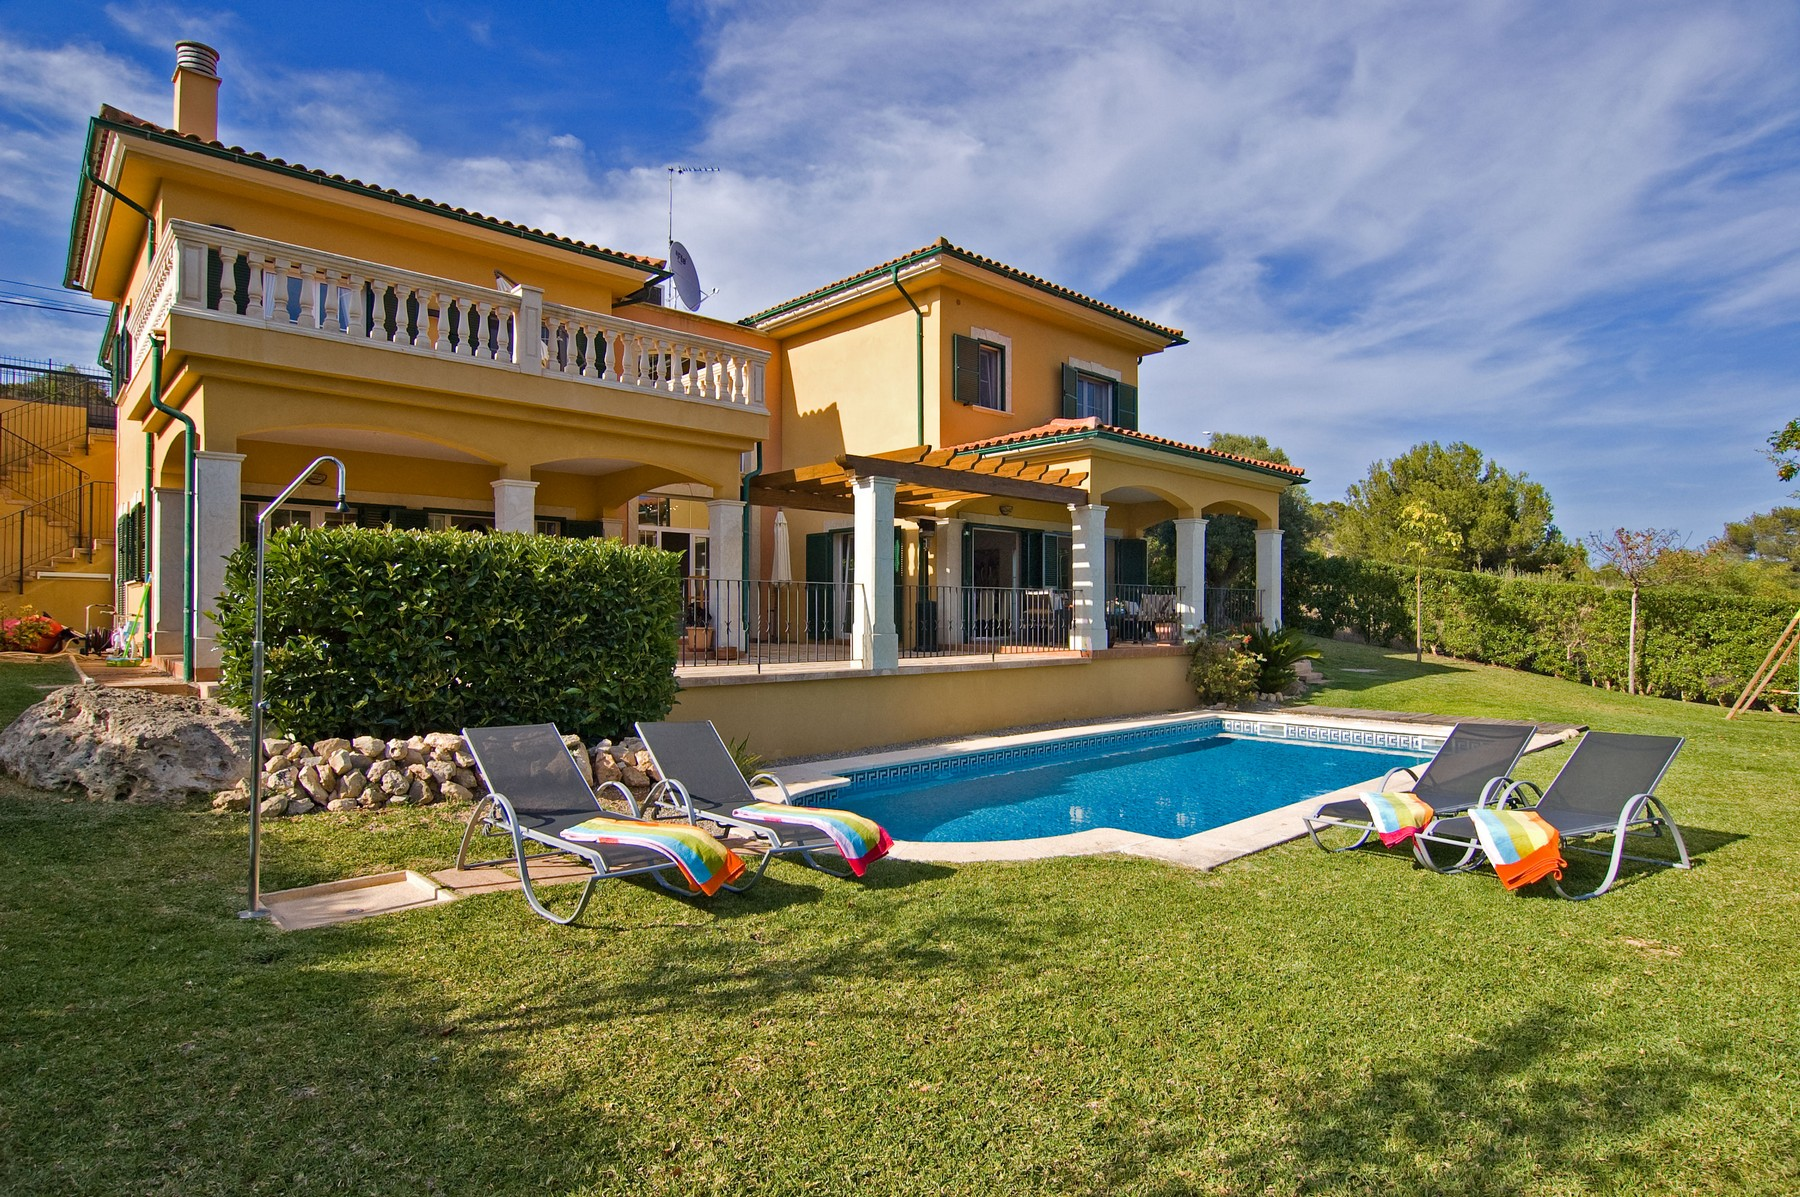 Single Family Home for Sale at Beautiful villa with swimming pool in Cala Vinyas Calvia, Mallorca 07181 Spain